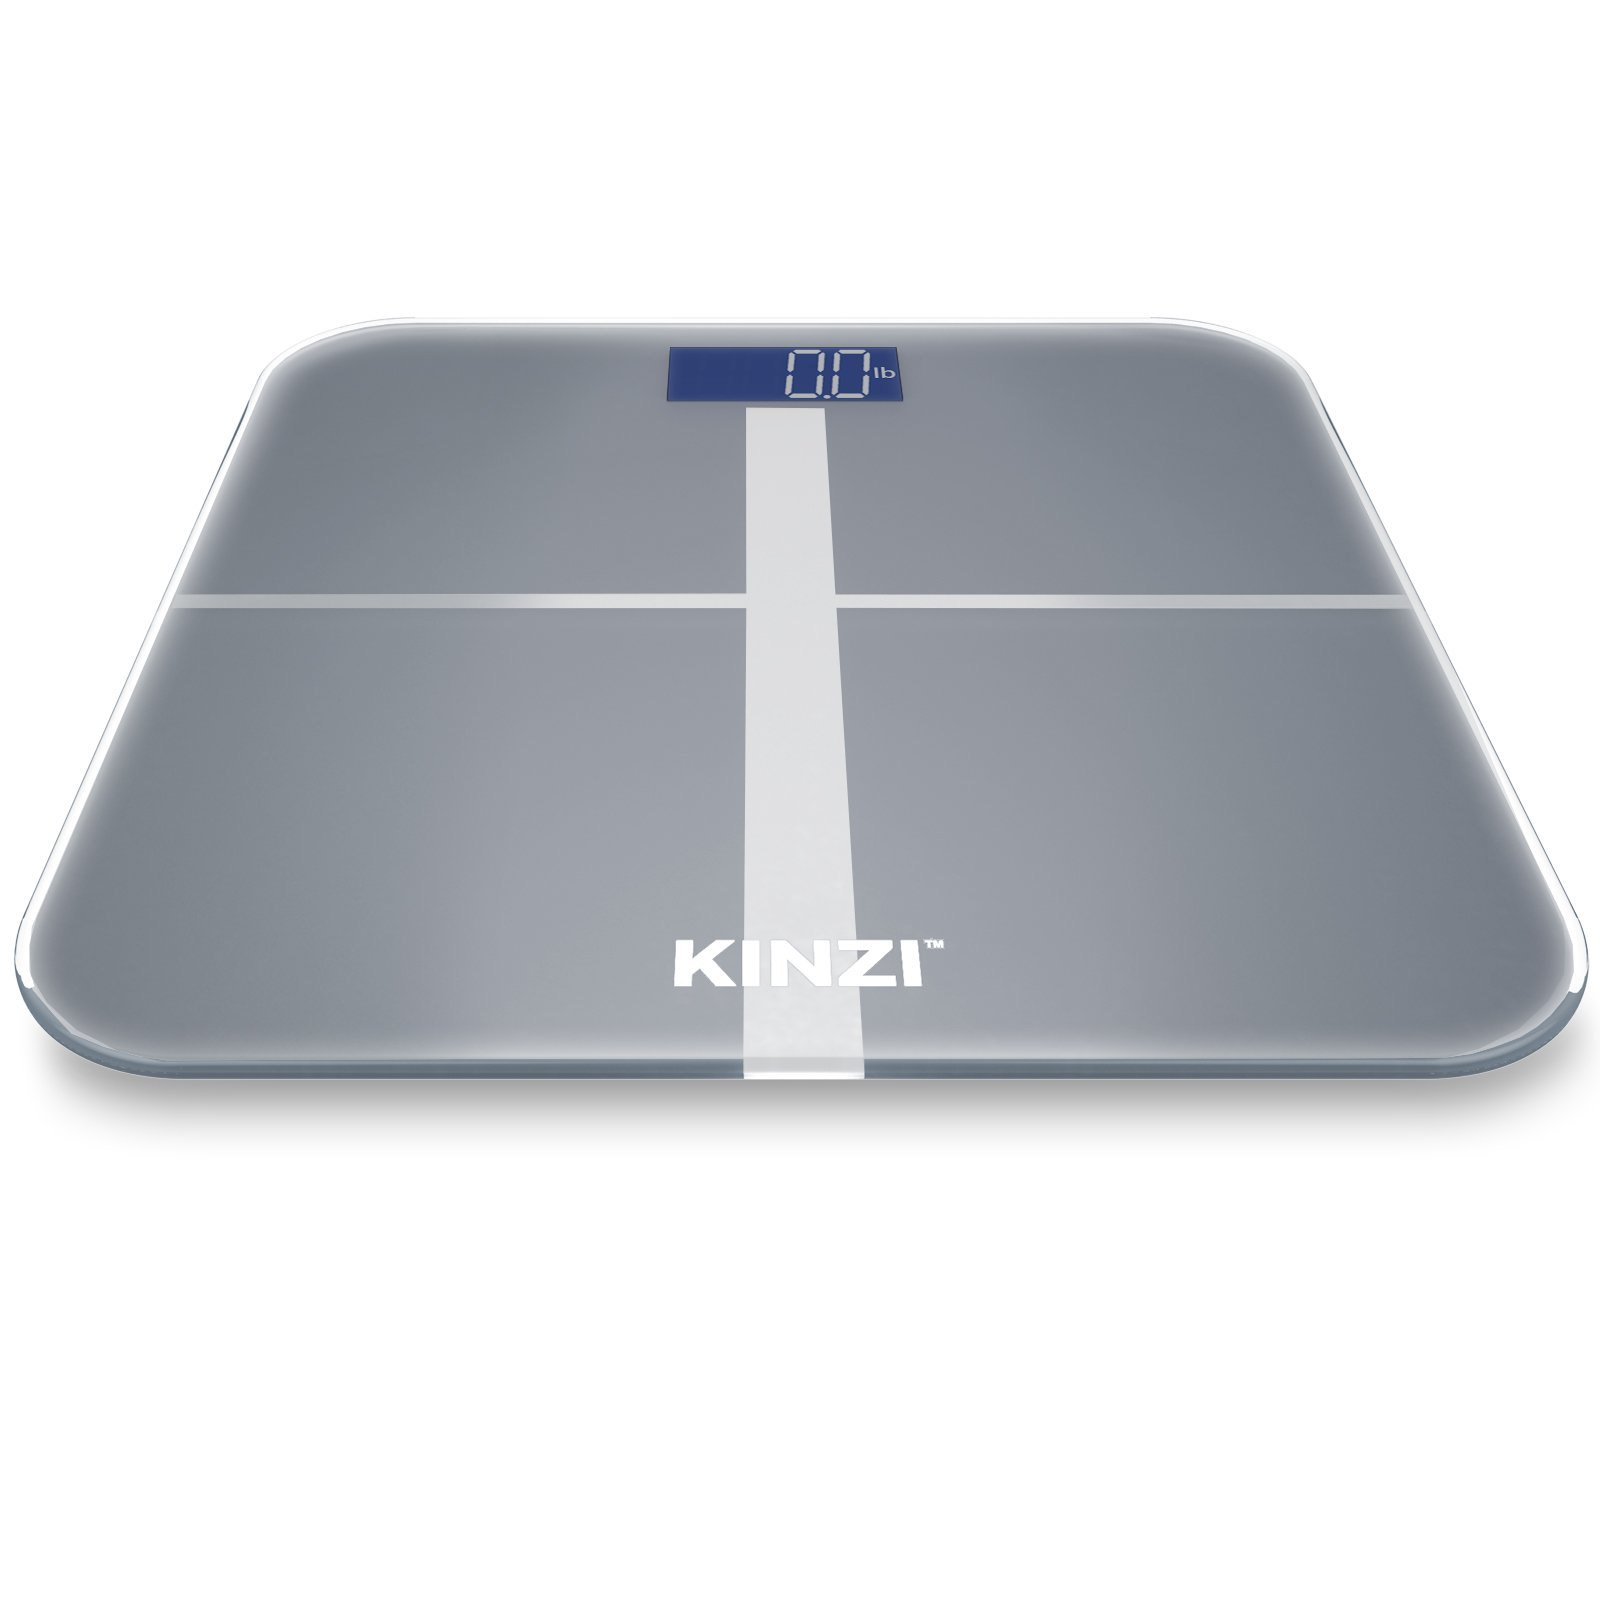 Kinzi Precision Digital Bathroom Scale w/ Extra Large Lighted Display, 400 lb. Capacity and ''Step-On'' Technology